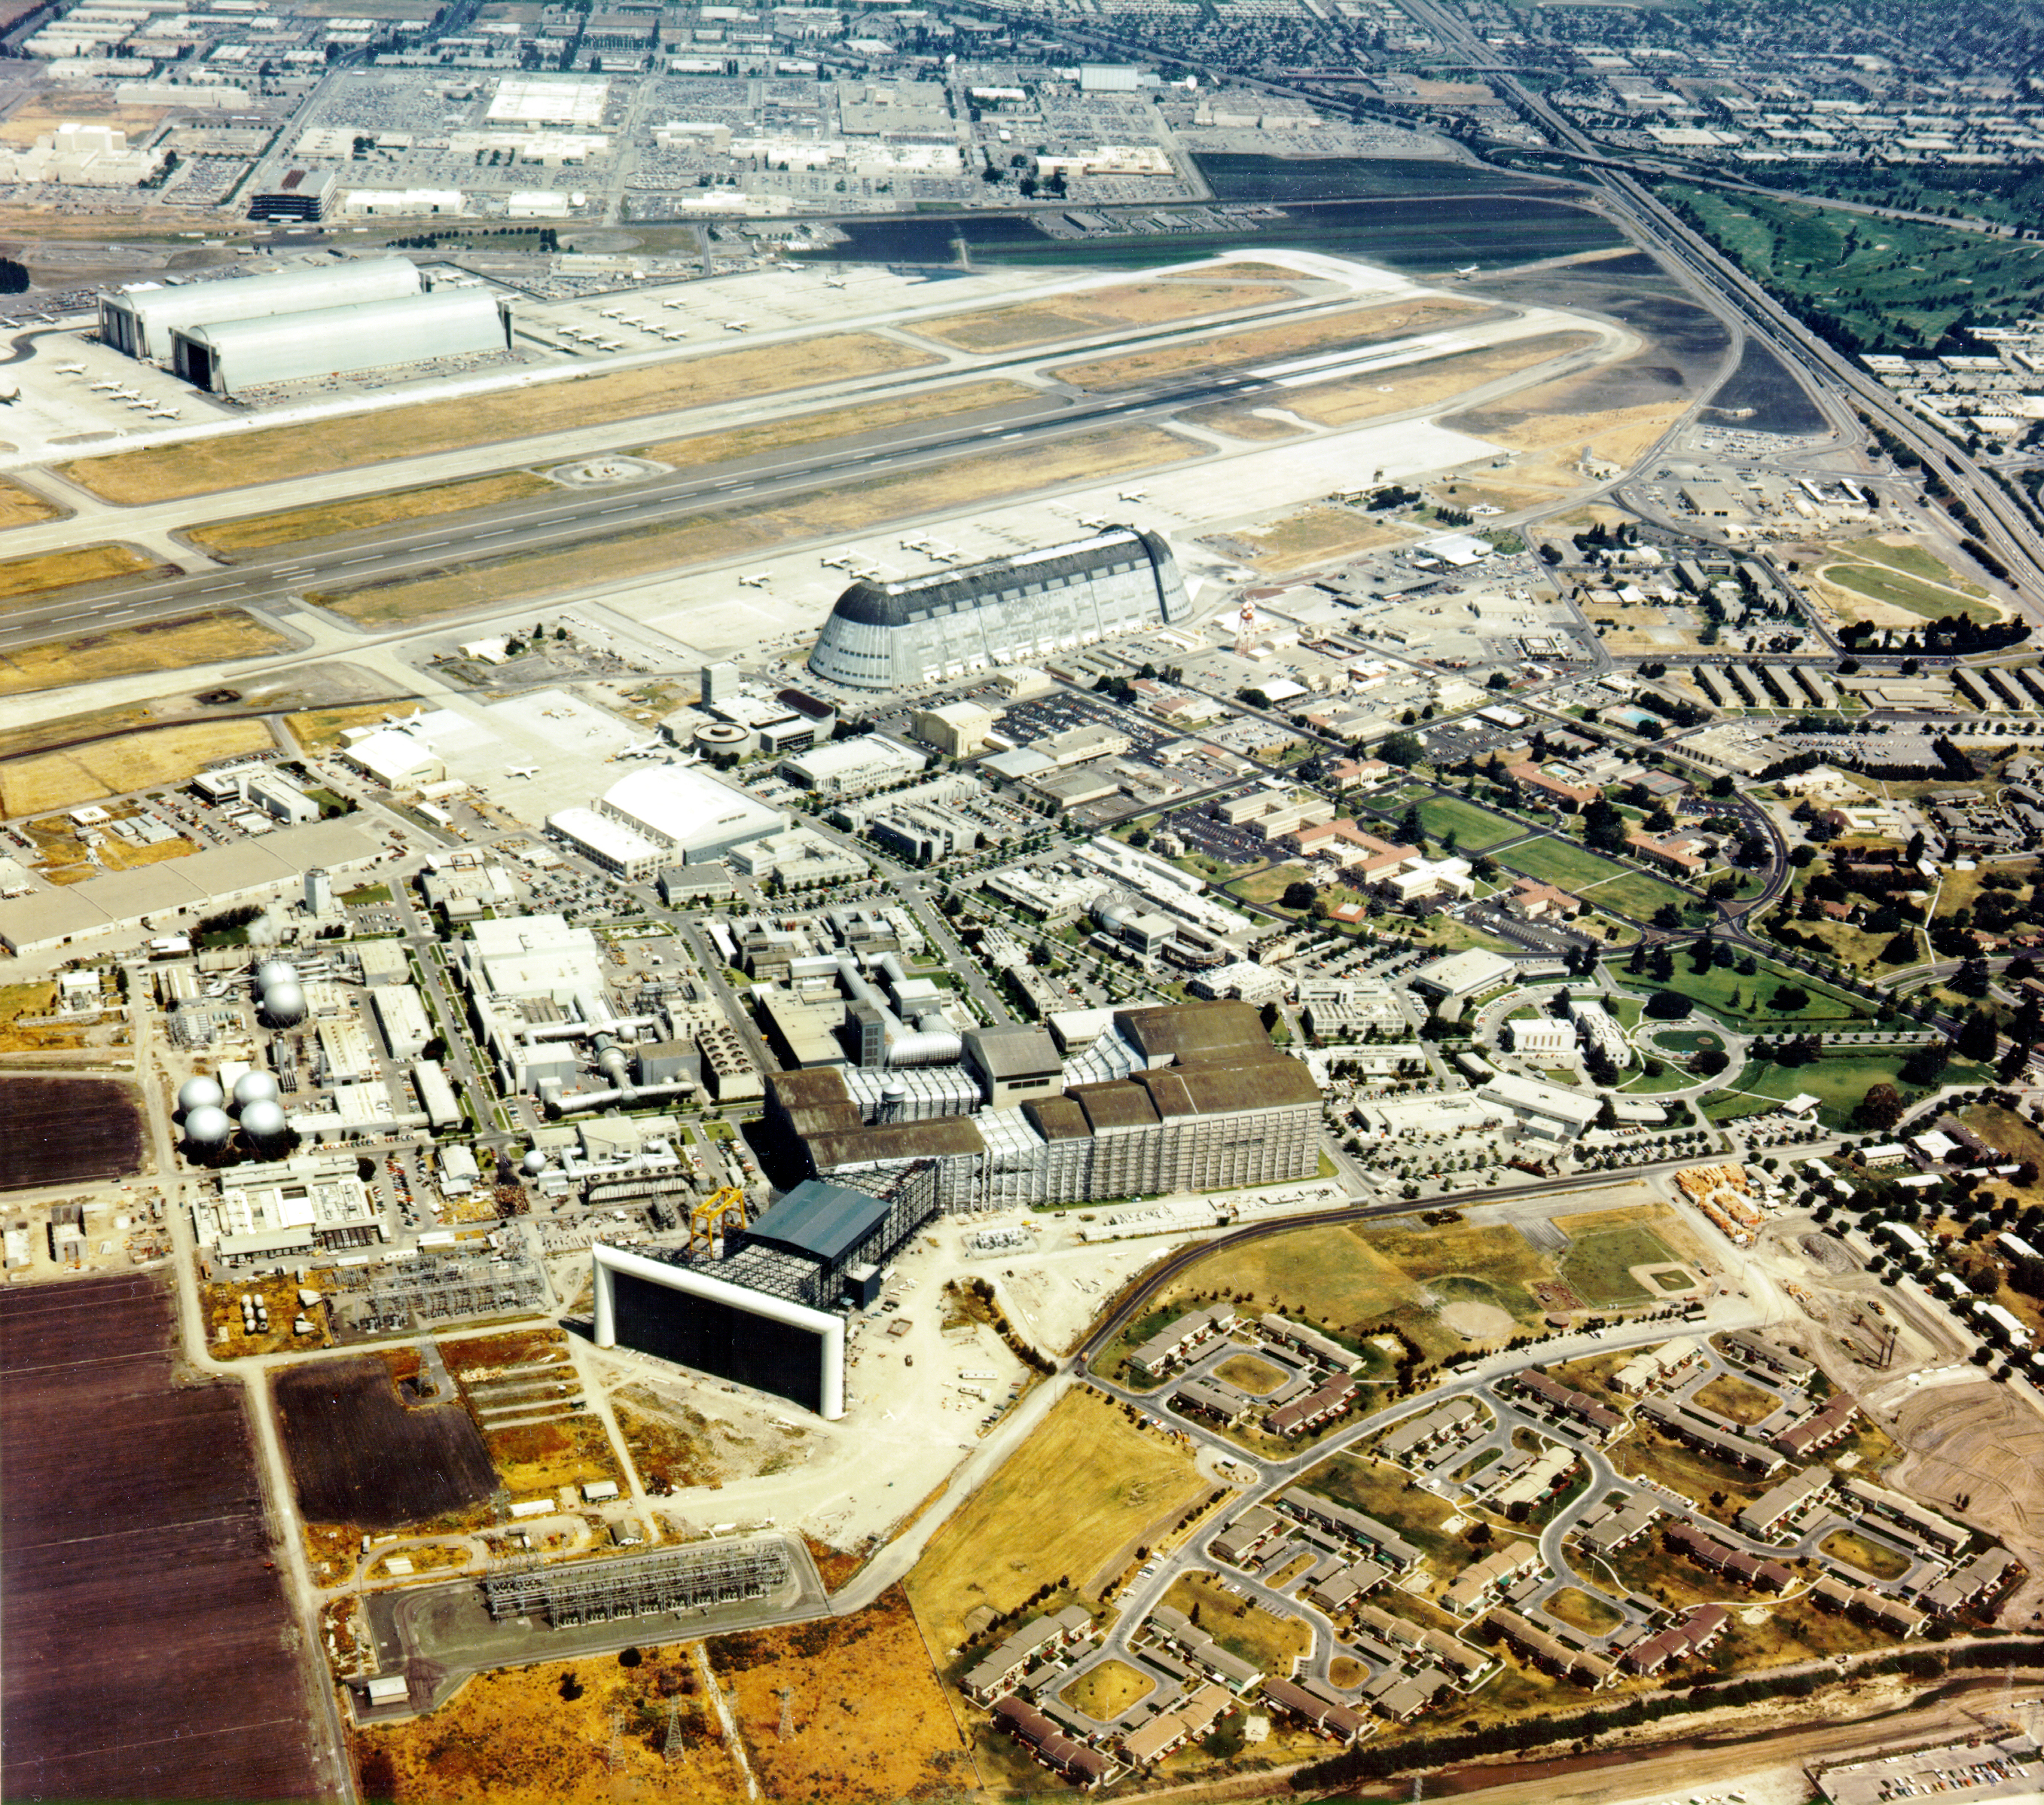 Aerial_View_of_the_NASA_Ames_Research_Ce